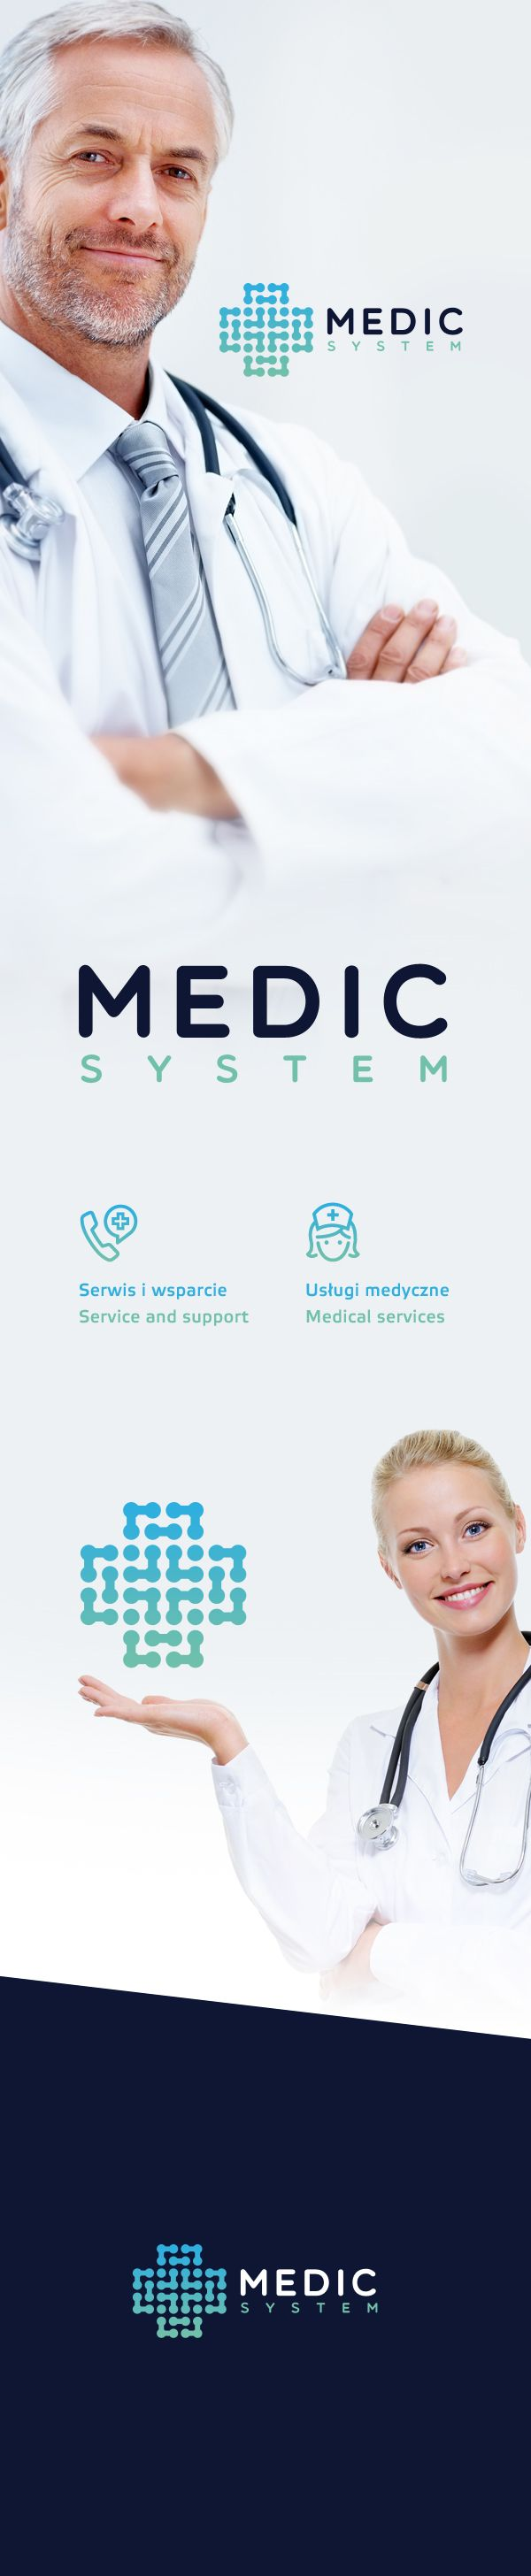 logo for medical company / FOR SALE by Karol Sidorowski, via Behance